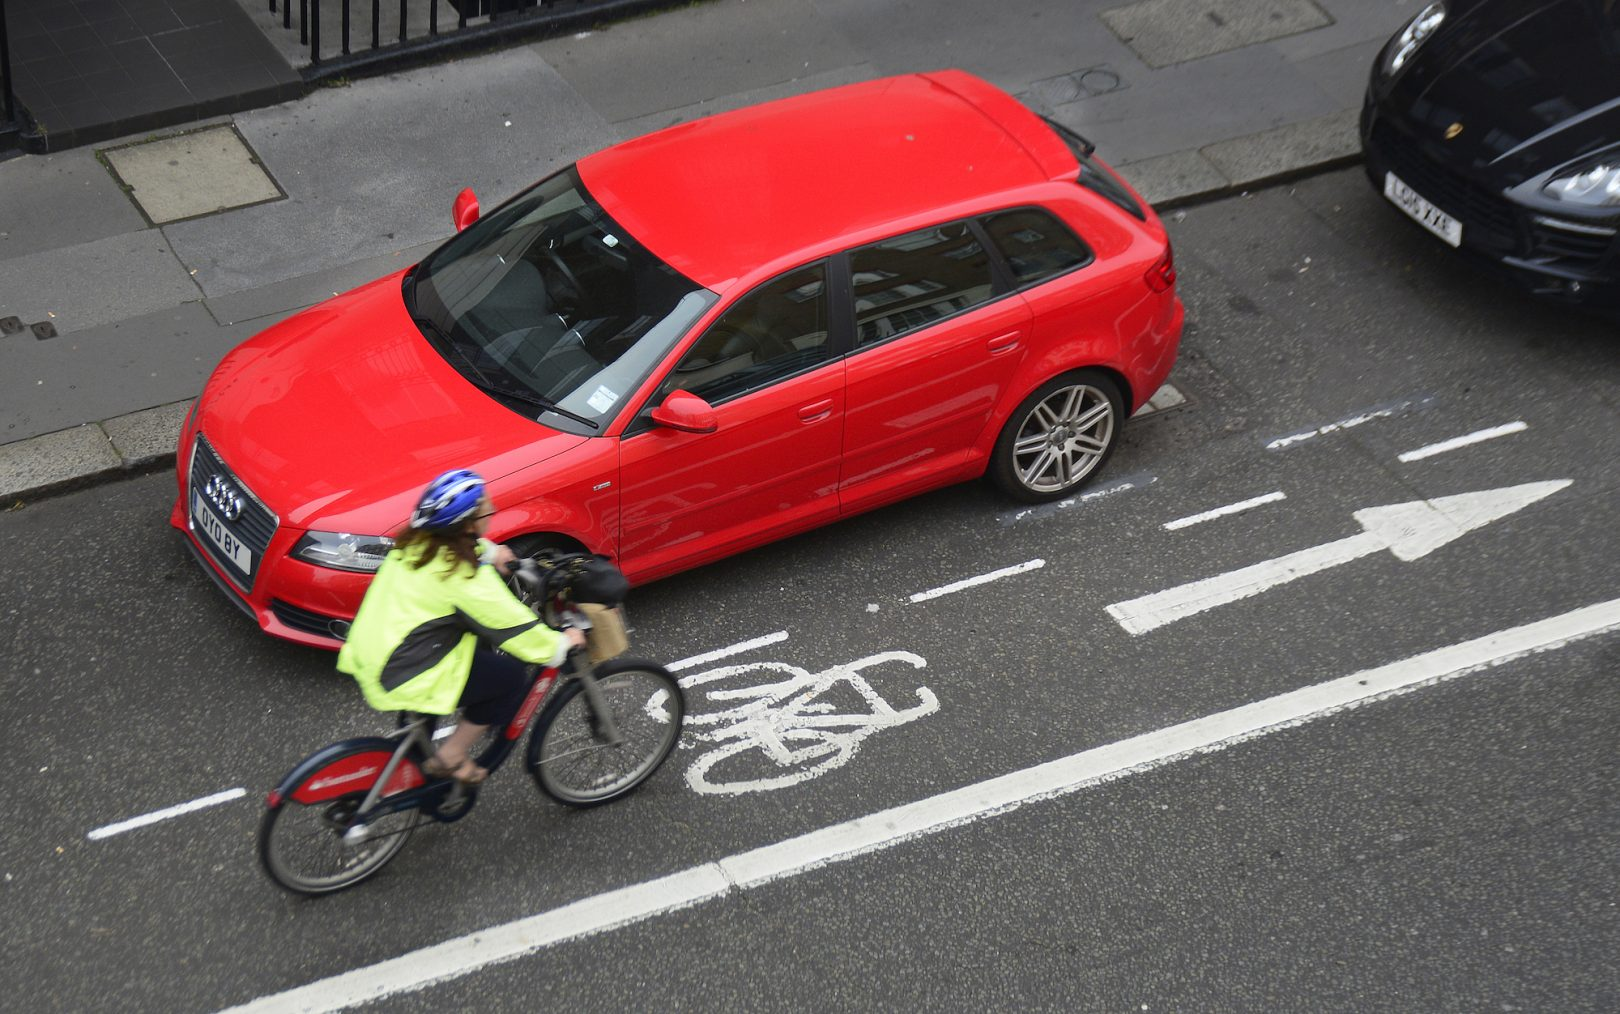 https://www.cyclingweekly.com/news/latest-news/painted-cycle-lanes-result-close-passes-drivers-study-finds-422068